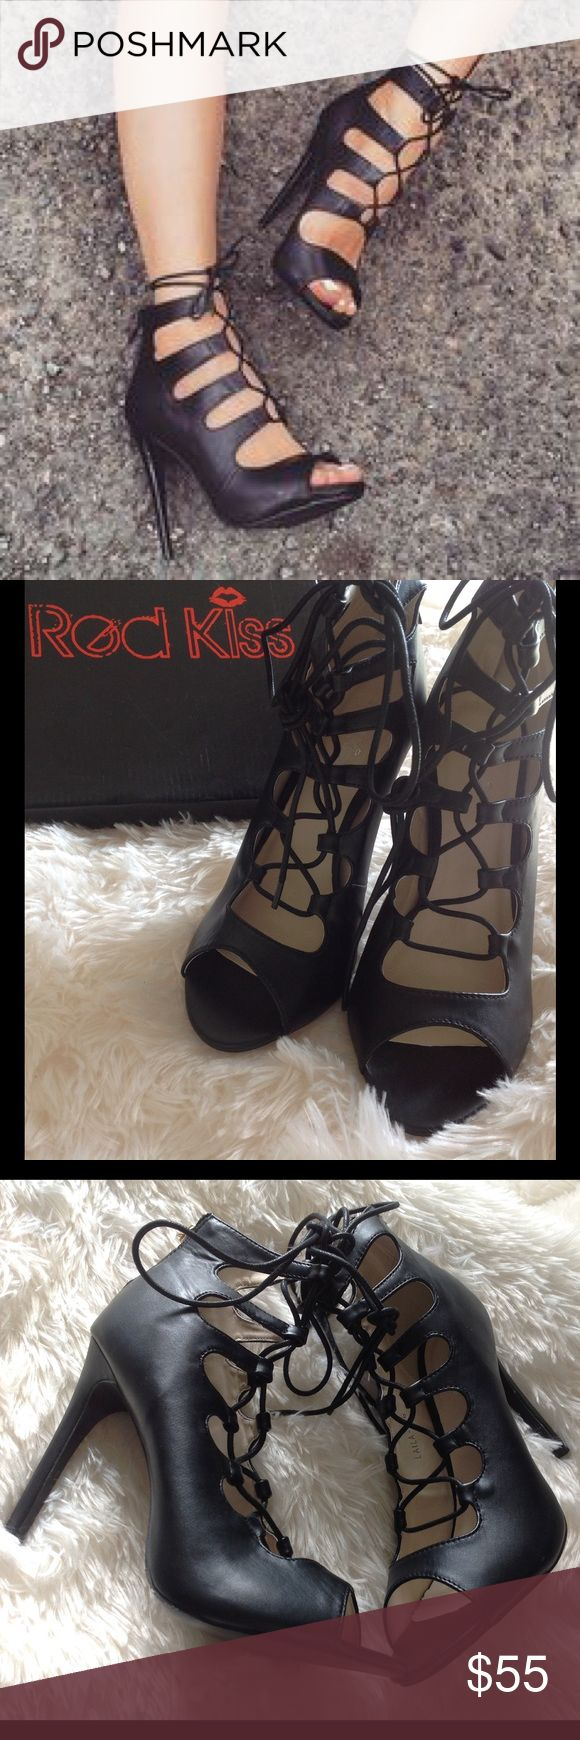 "Black Faux Leather Lace Up Heels From ENGLAND BRAND NEW black lace up heels. 4"" heel.  Similar to Zara, but, these are by Red Kiss. In box. UK size 6. US size 8. Zara Shoes Heels"